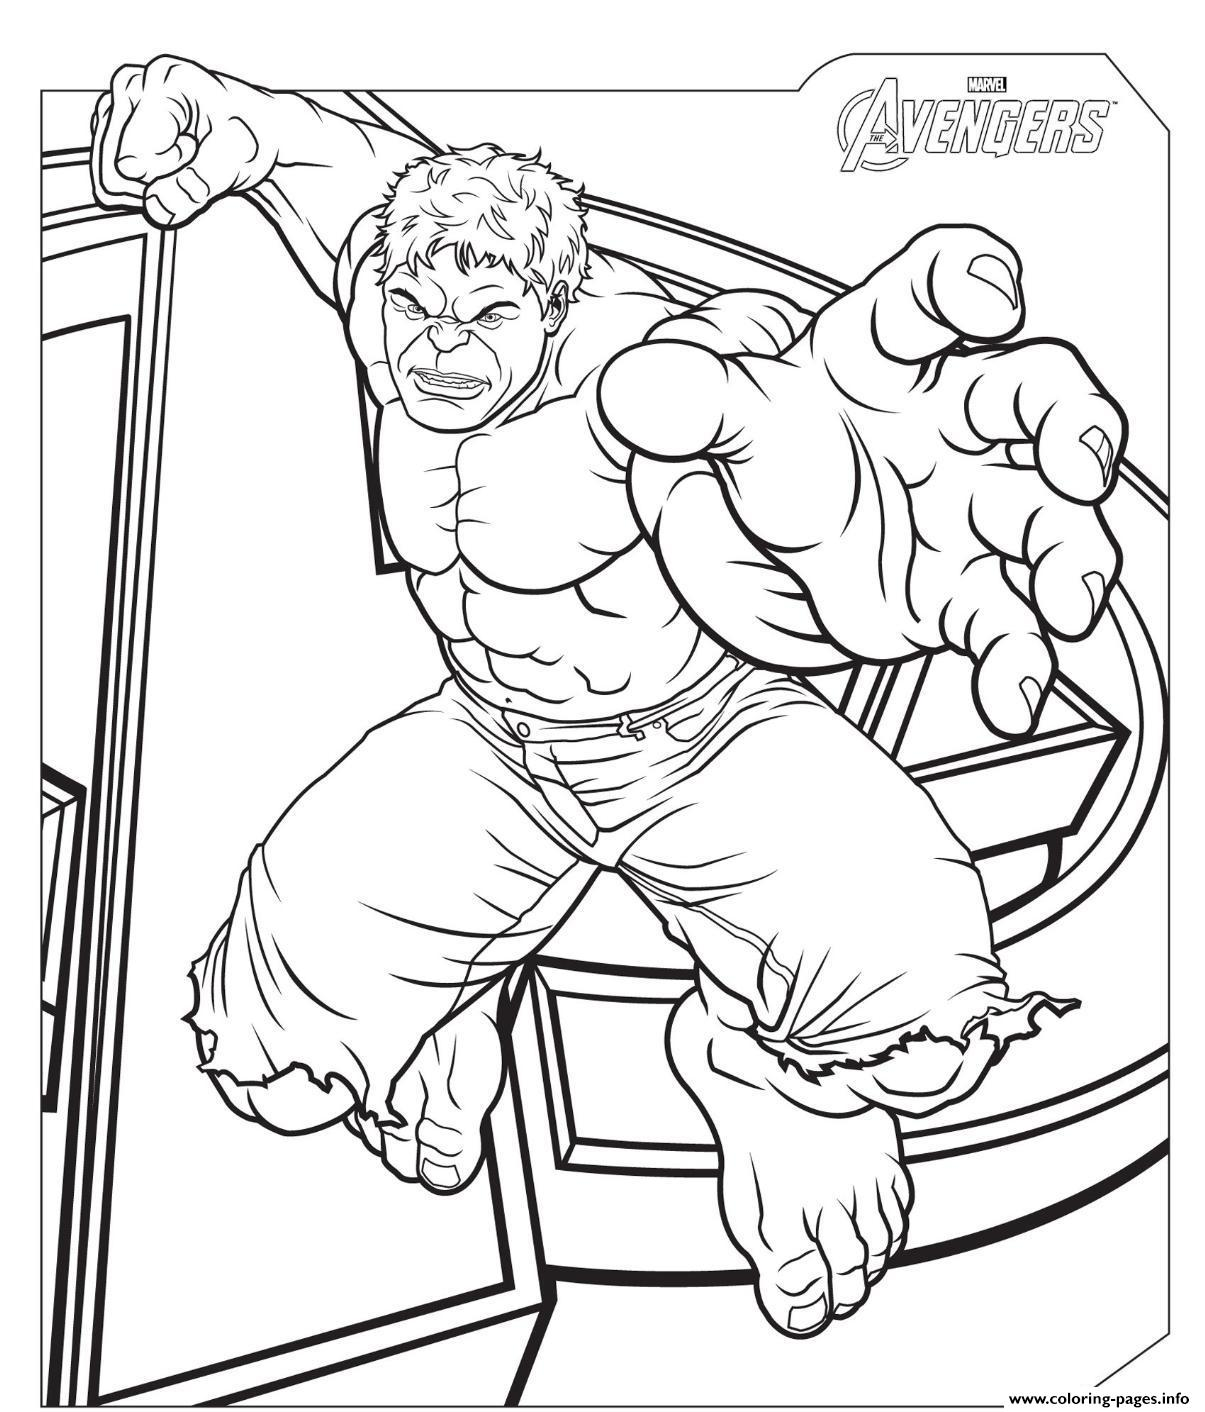 The Avengers Hulk S2f57 Coloring Pages Print Download 450 Prints